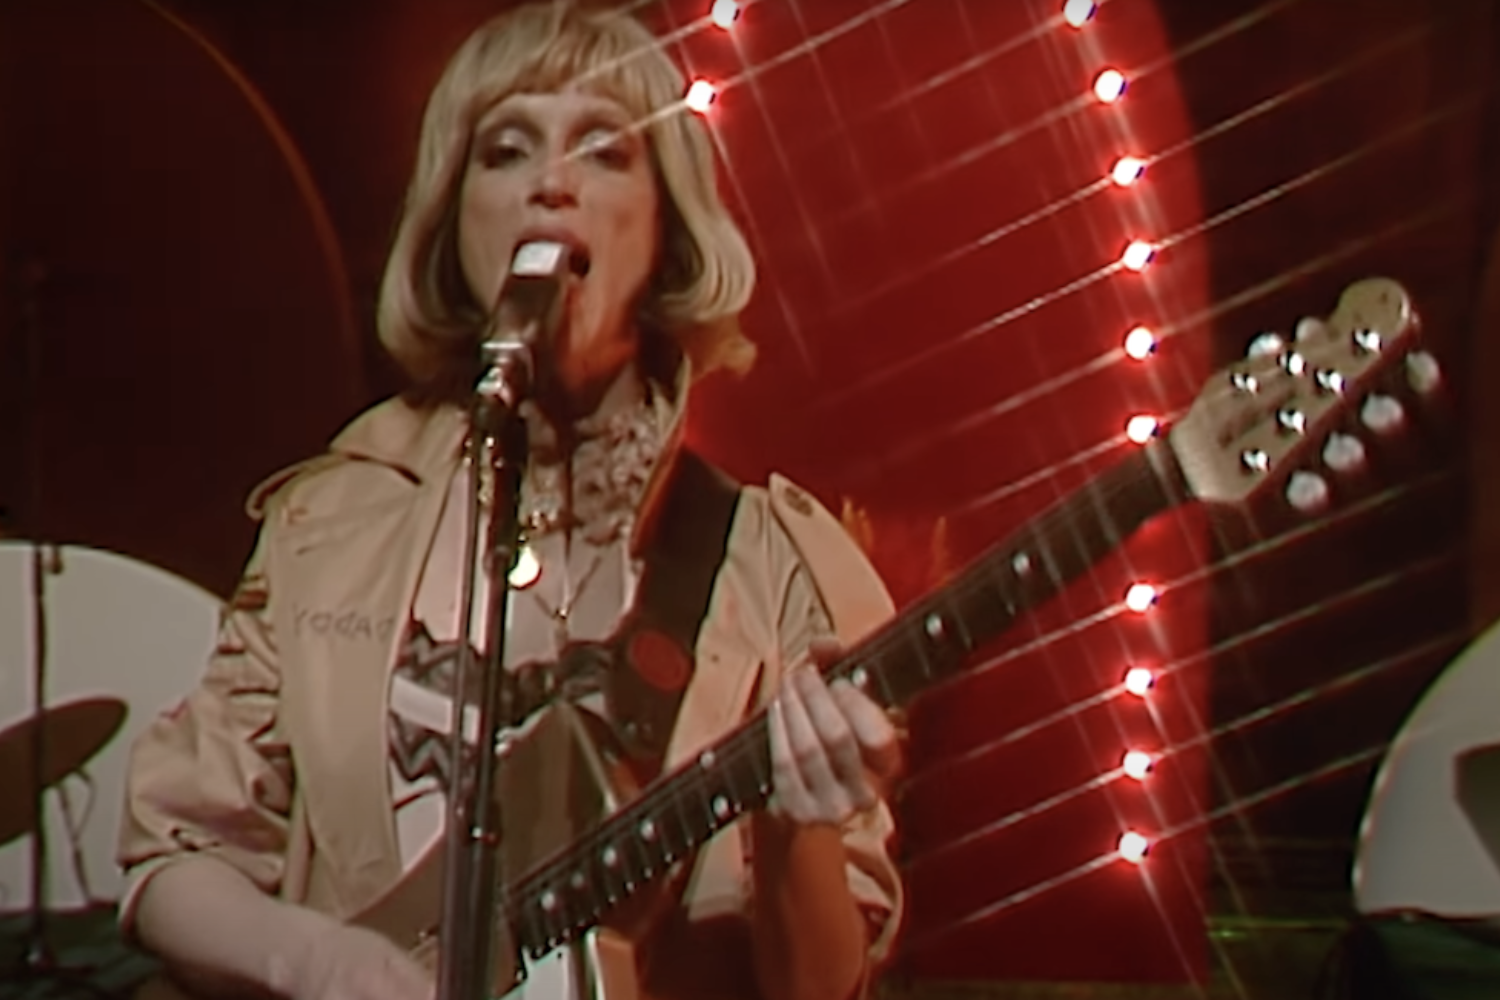 St. Vincent performs 'Down' on The Tonight Show starring Jimmy Fallon